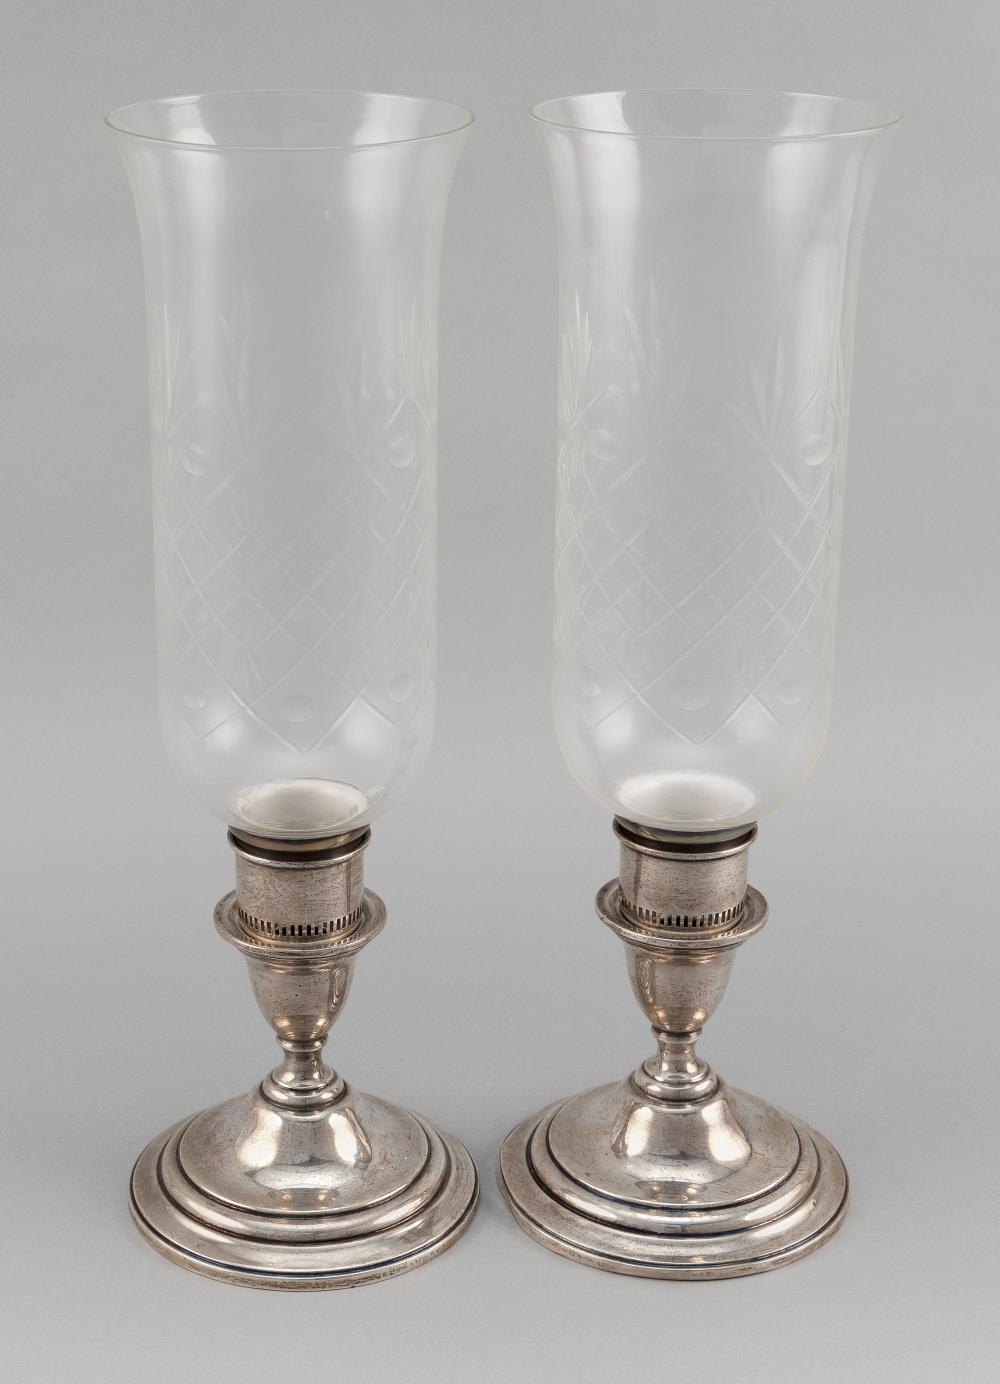 """PAIR OF INTERNATIONAL STERLING """"LORD SAYBROOK"""" WEIGHTED STERLING SILVER CANDLESTICKS WITH CUT GLASS HURRICANES 20th Century"""